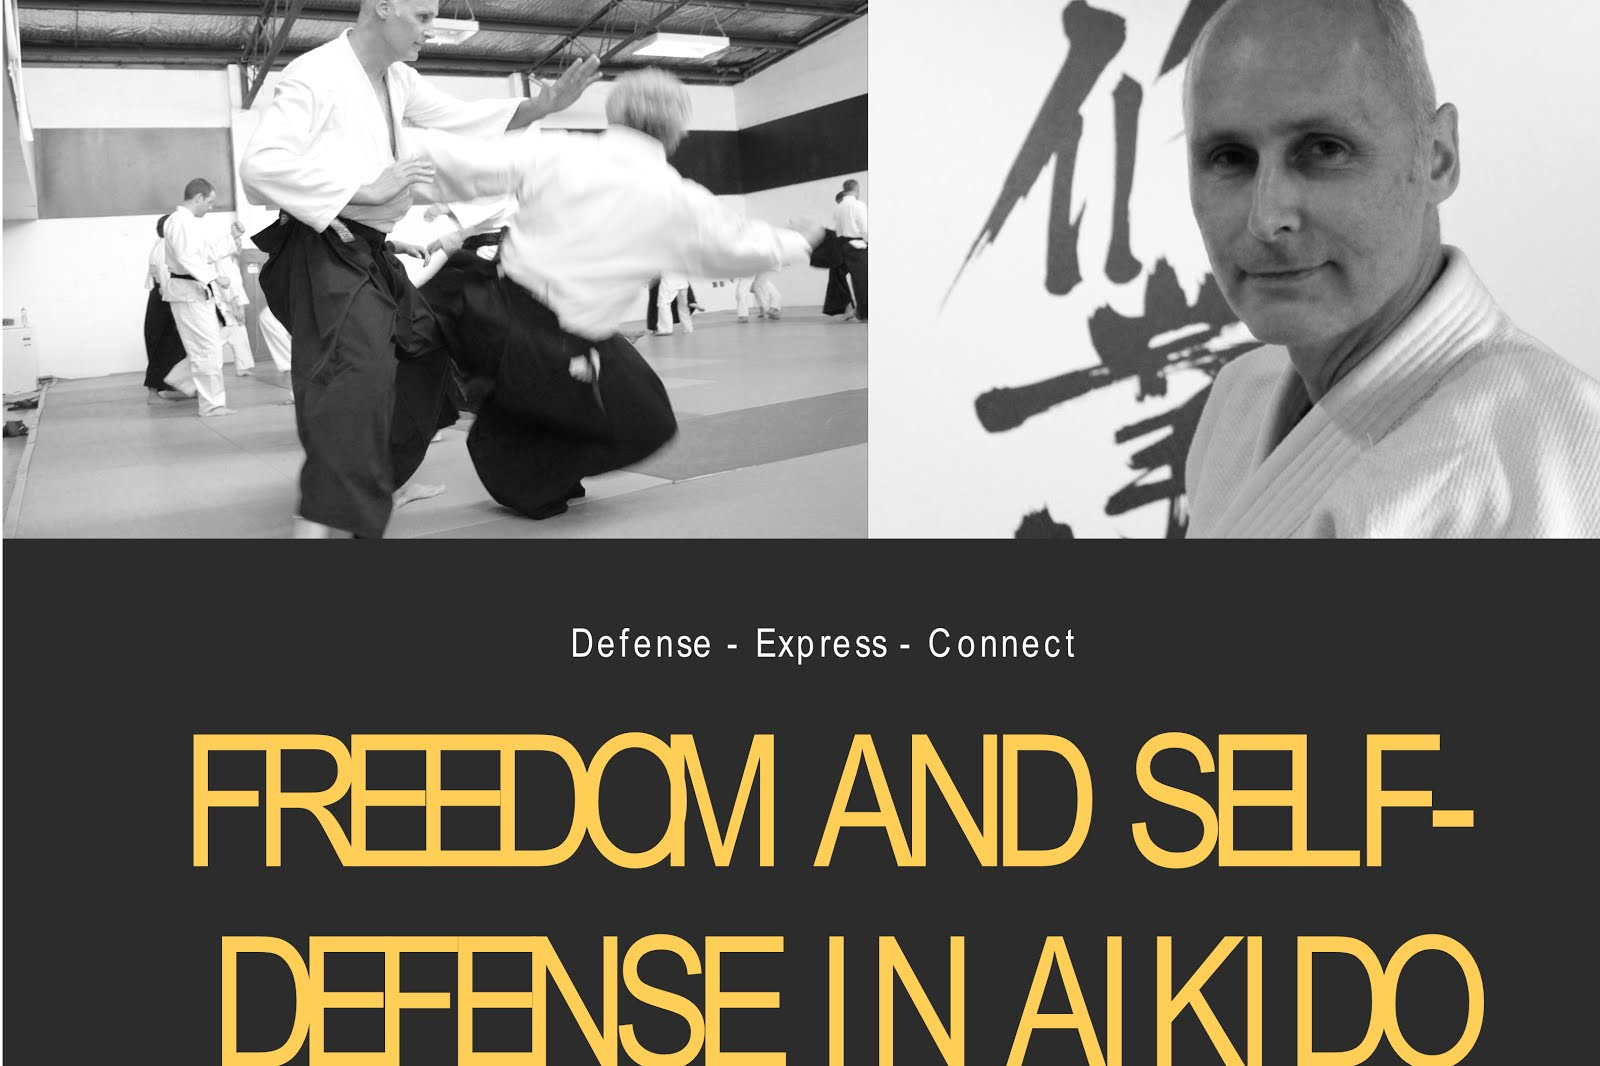 Freedom and Self defense